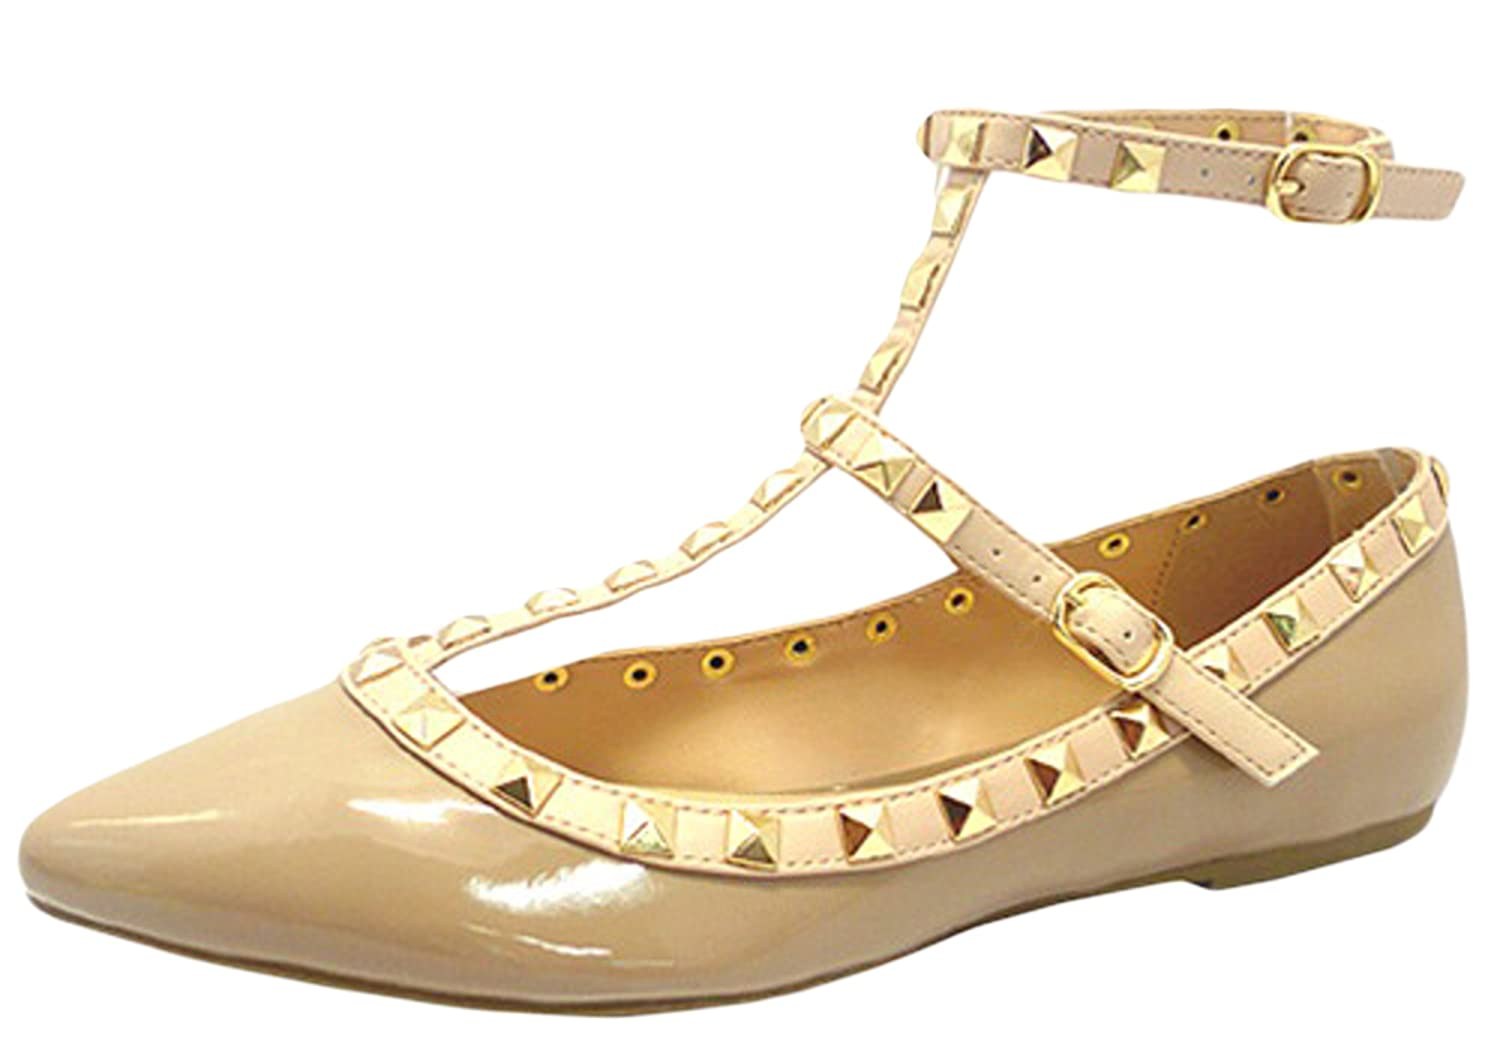 Wild Diva Women's Studded Accent Pointed Toe Ballet Flats B00N9RO1VU 7.5 B(M) US|Natural Patent